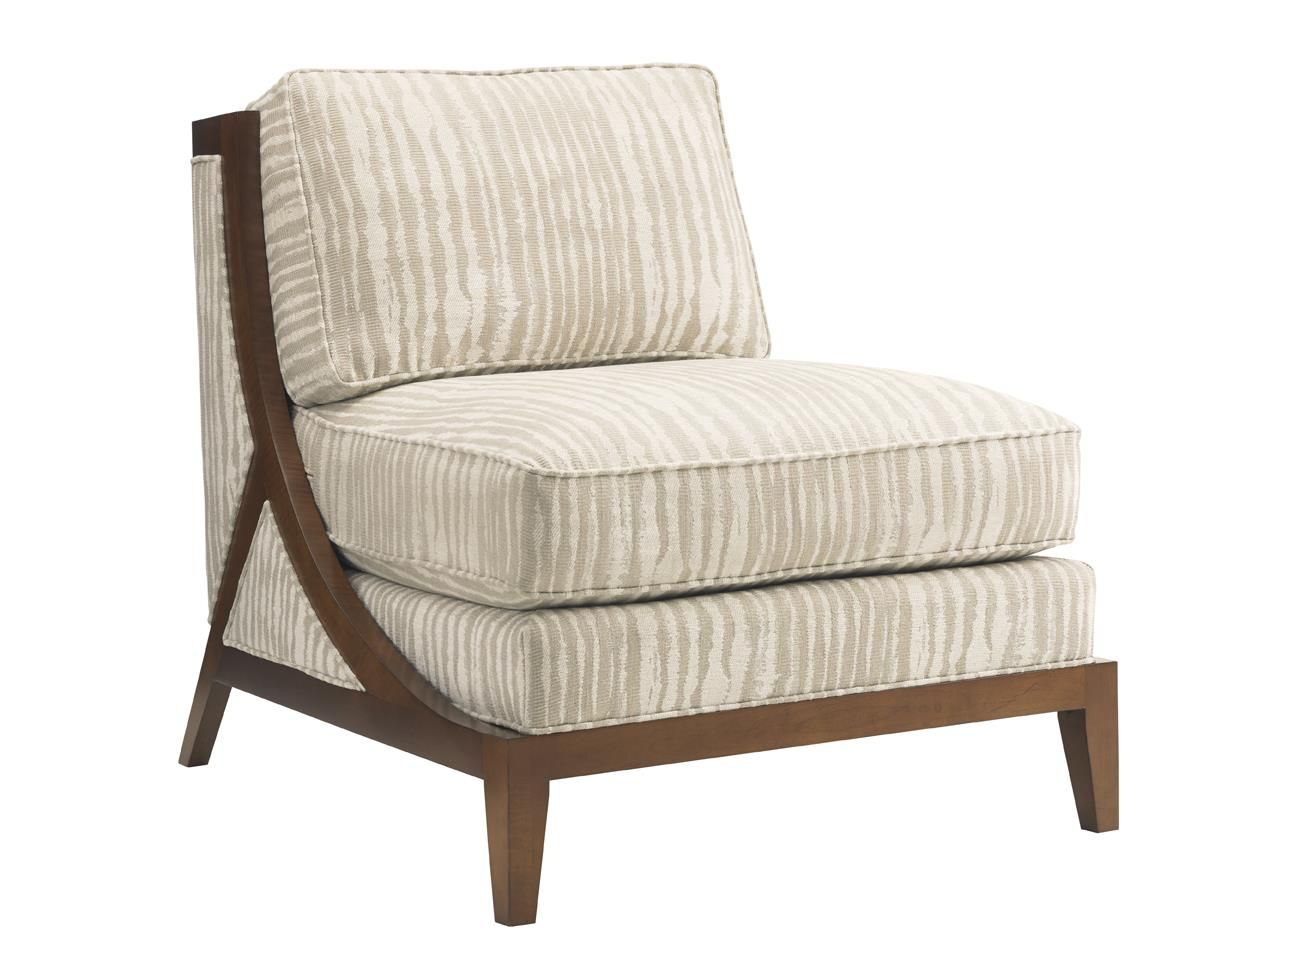 island fusion tasman chair by tommy bahama home at hudson s